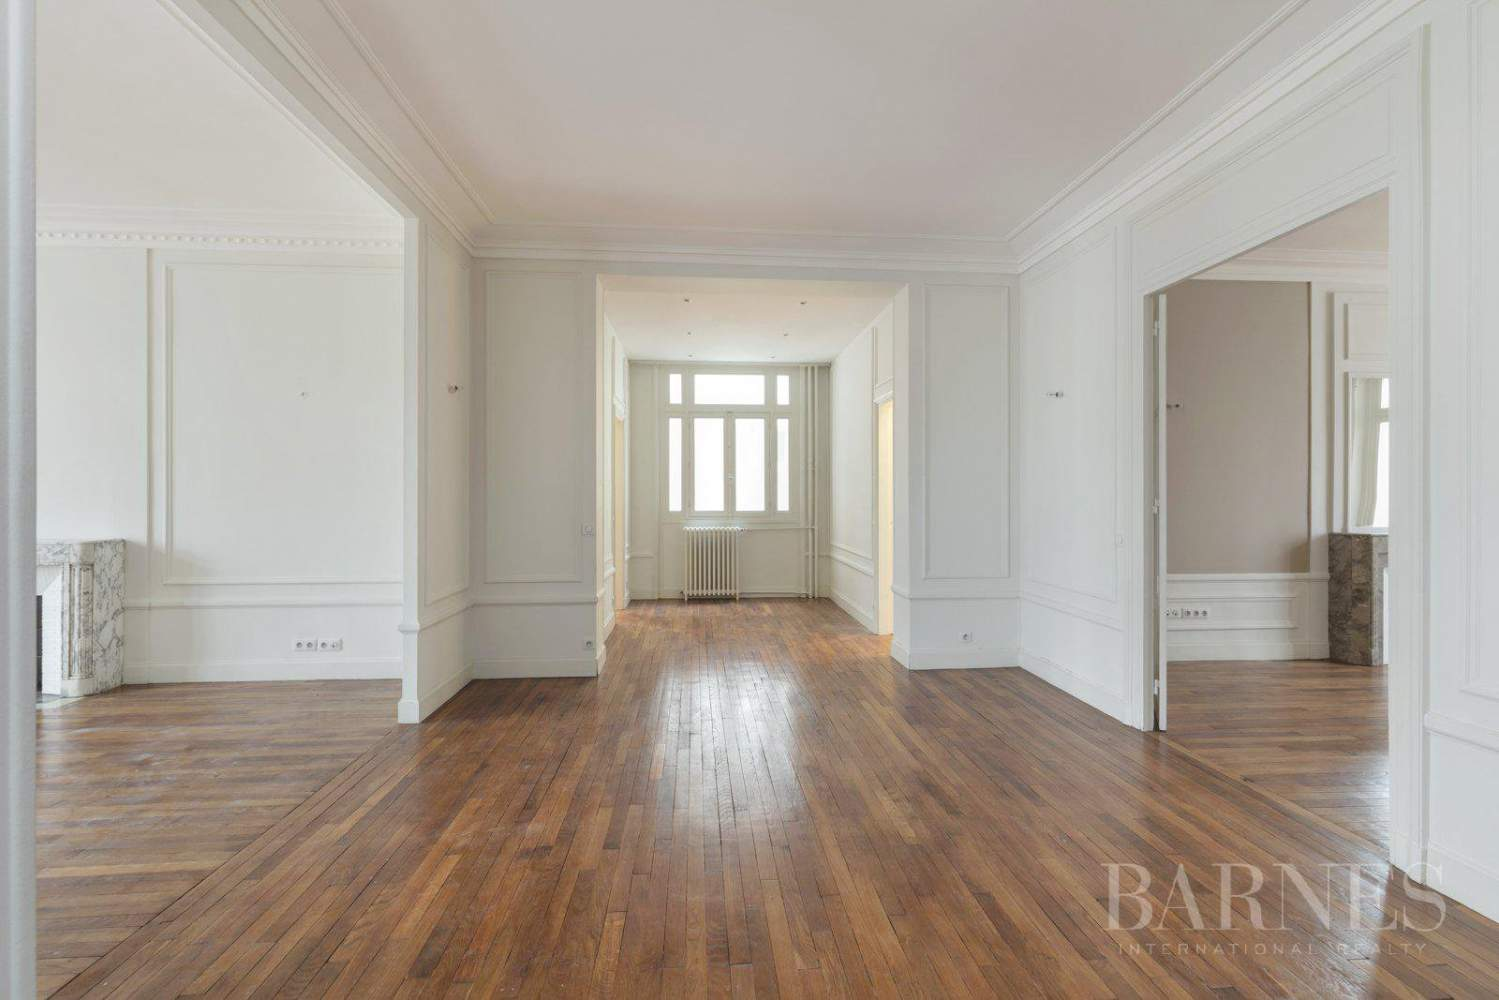 EXCLUSIVE - 8-ROOM APARTMENT FOR SALE - RENOVATED 1930s BUILDING - NEUILLY/PASTEUR picture 1